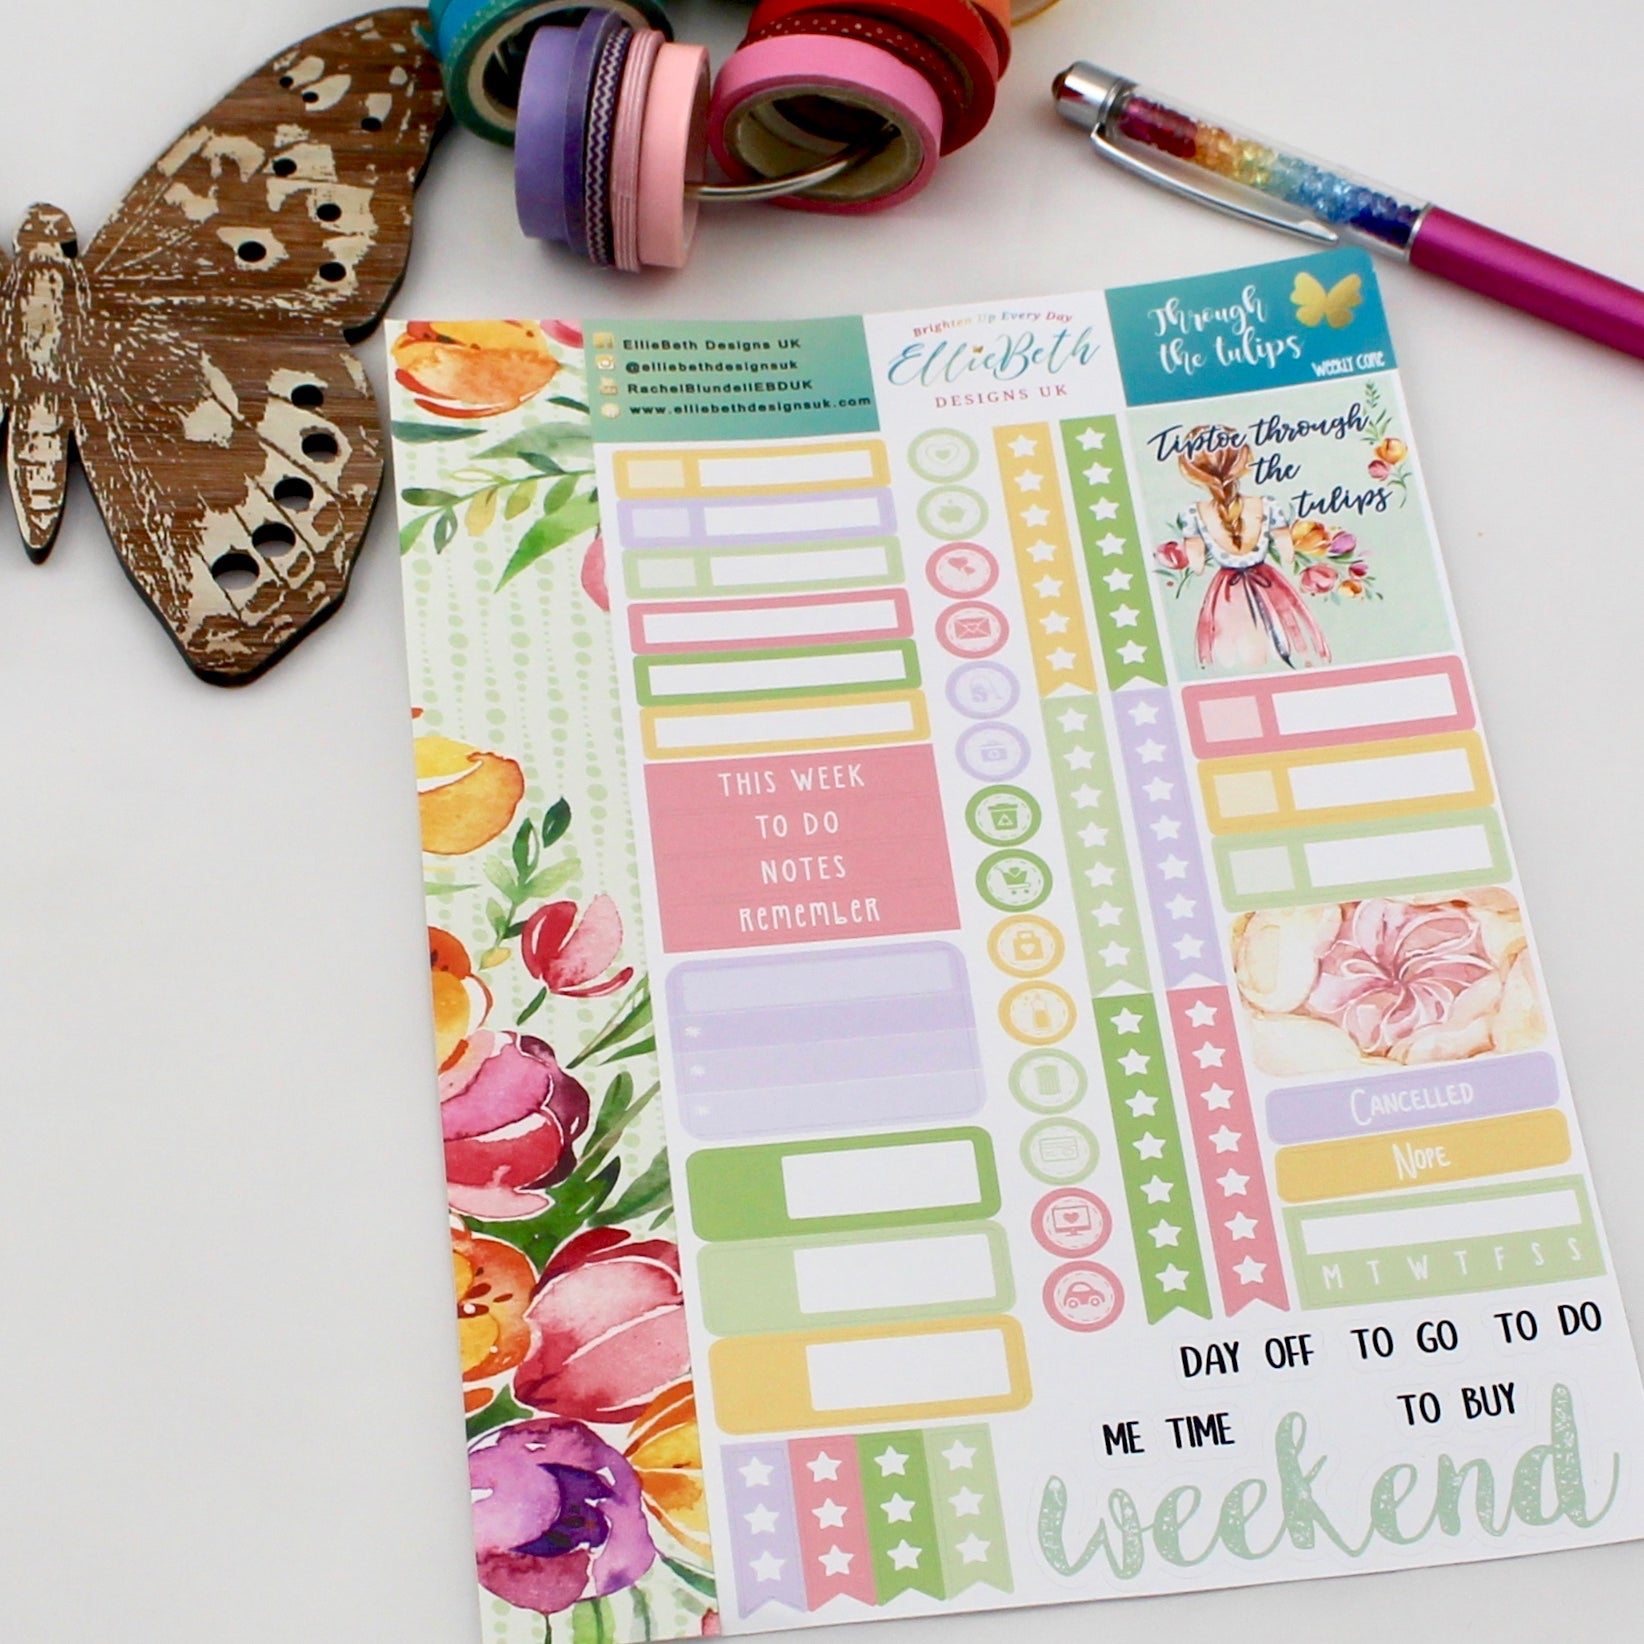 'Through the Tulips' - Weekly Core Sheet - A5 binder ready planner stickers - EllieBeth Designs UK